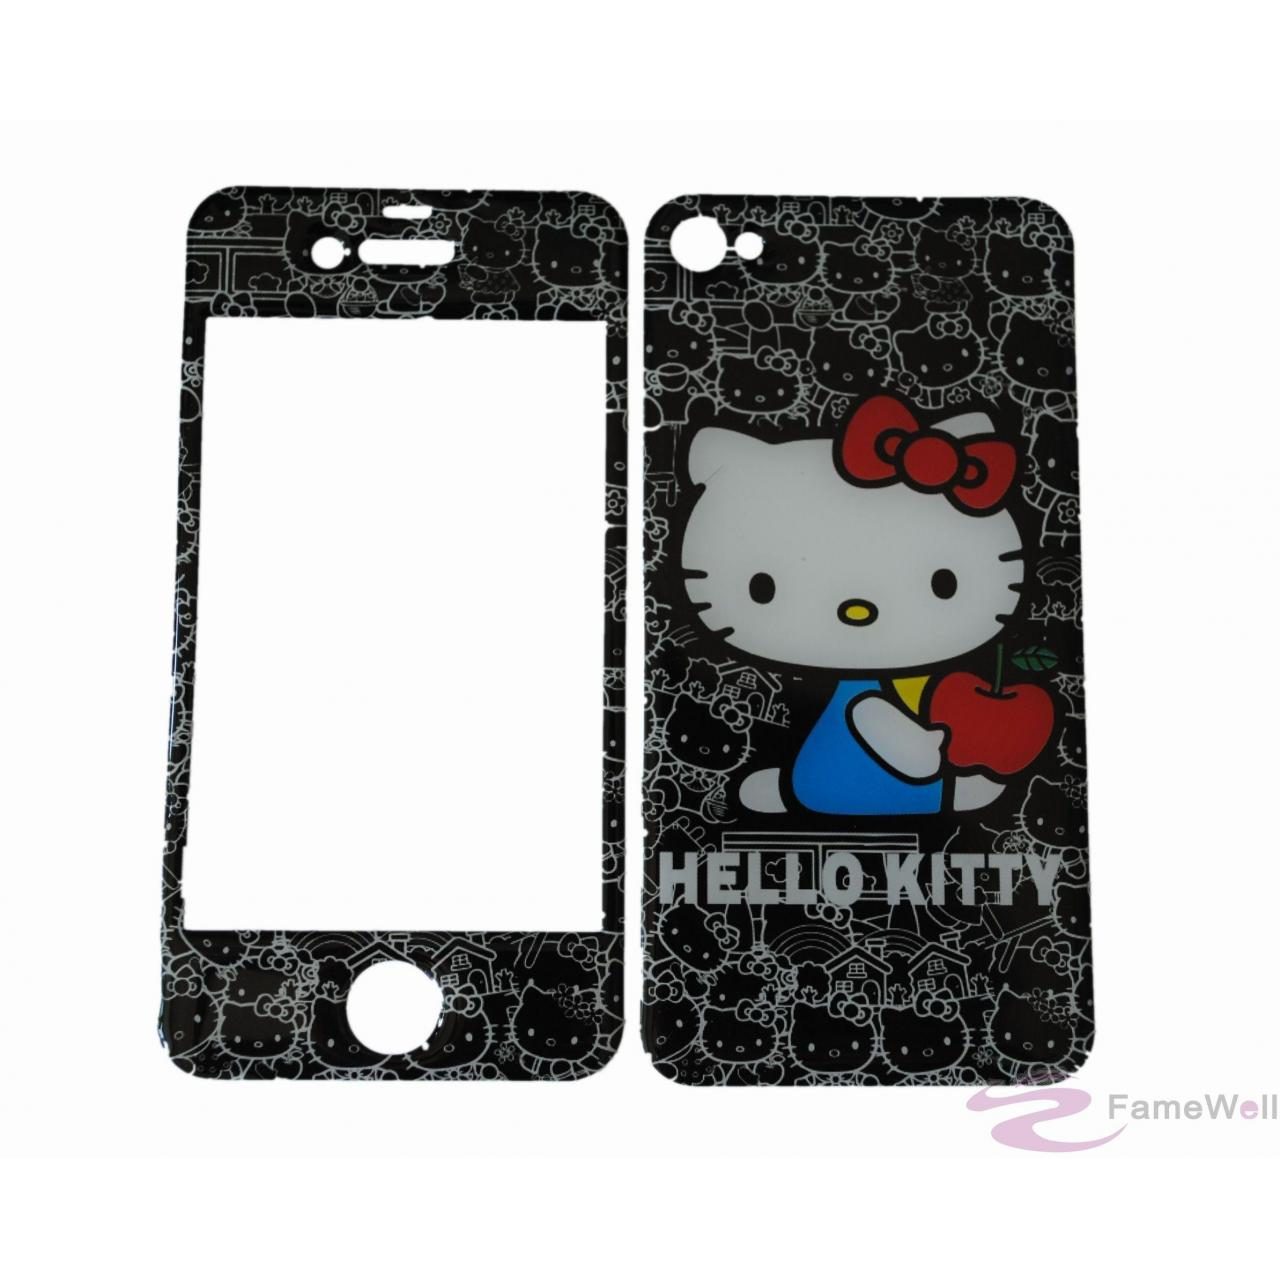 China sticker skin for iPhone 4 wholesale